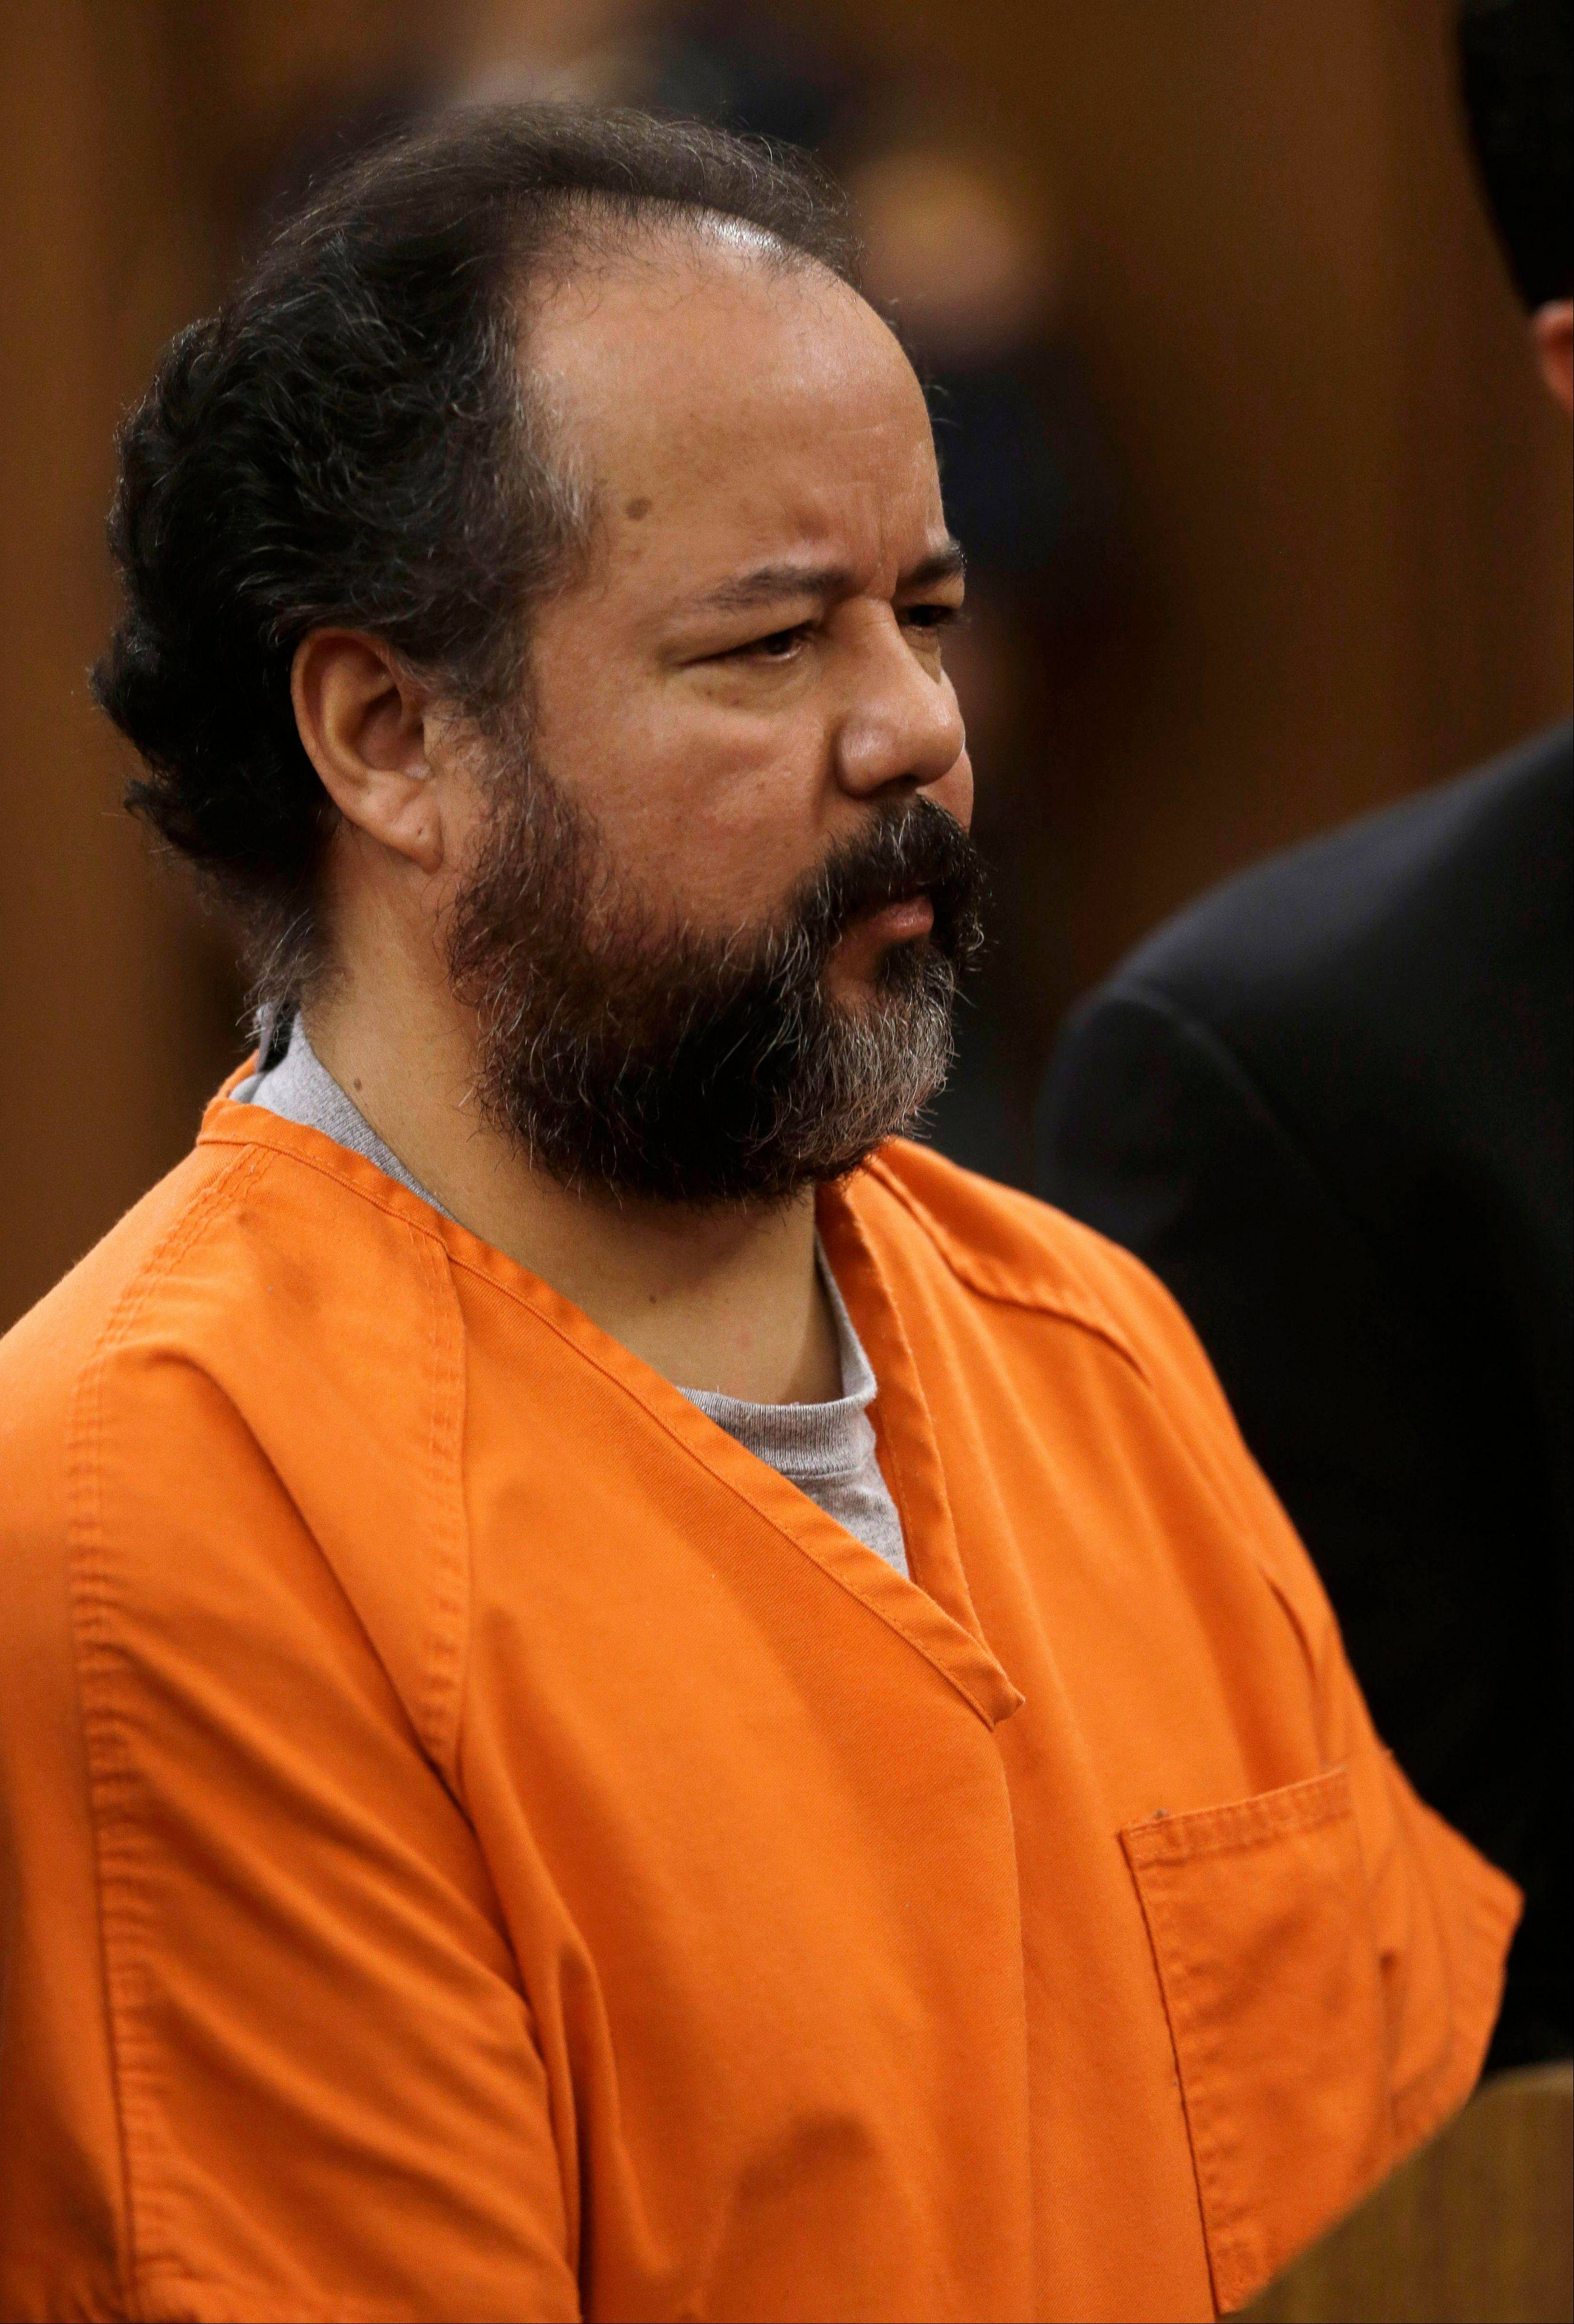 Ariel Castro stands before a judge during his arraignment on an expanded 977-count indictment Wednesday, July 17, 2013, in Cleveland. Castro is charged with kidnapping and raping three women over a decade in his Cleveland home. Castro pleaded not guilty to 512 counts of kidnapping and 446 counts of rape.